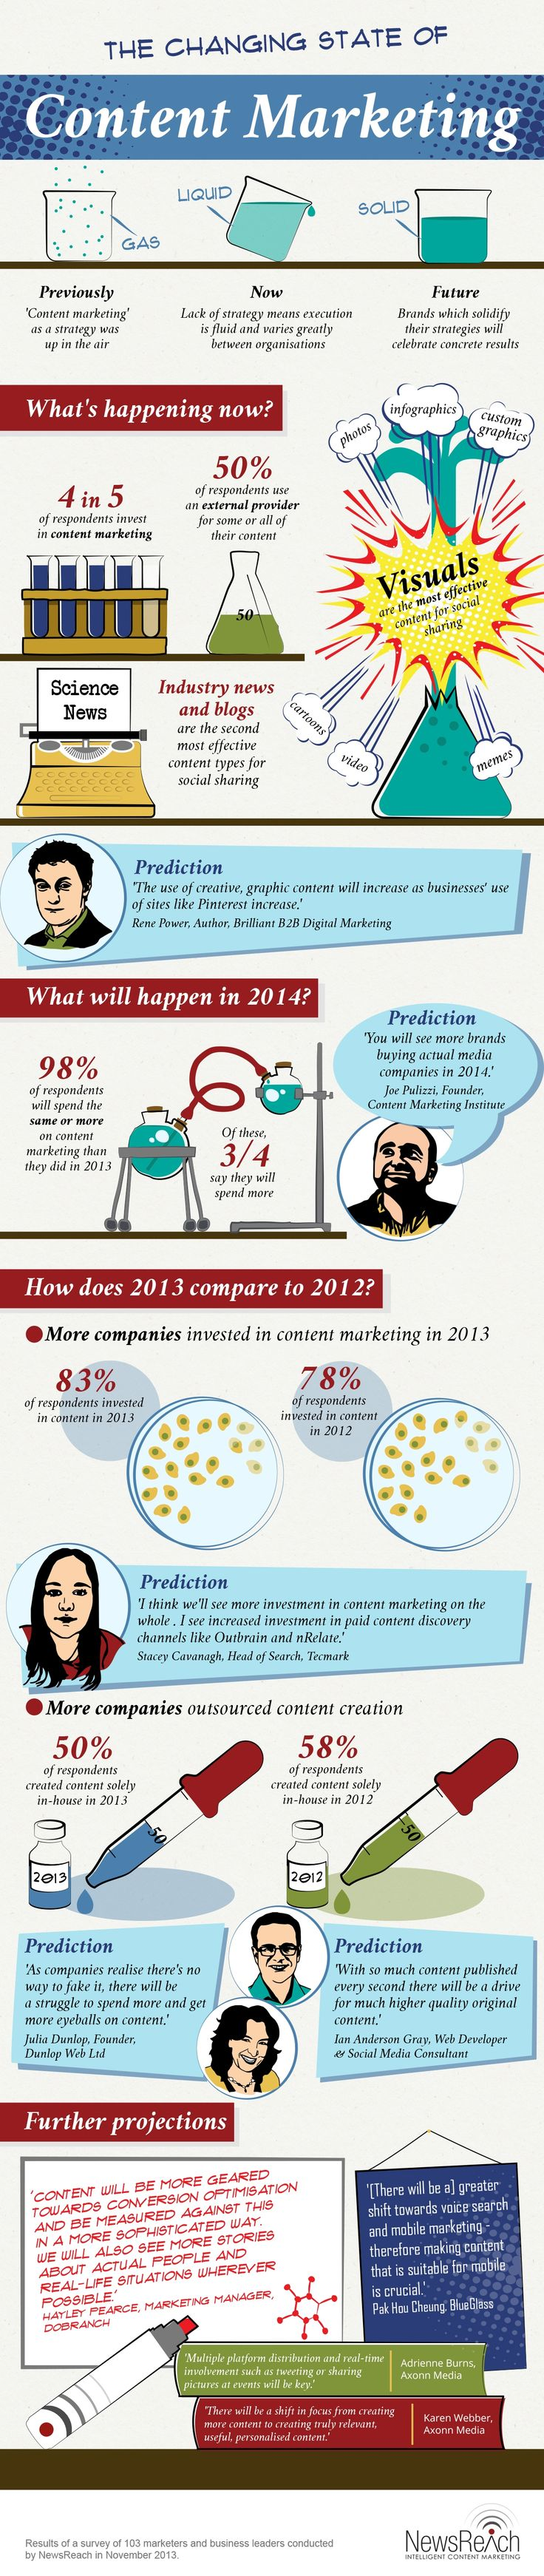 The Changing State Of Content Marketing In 2014 #infographic